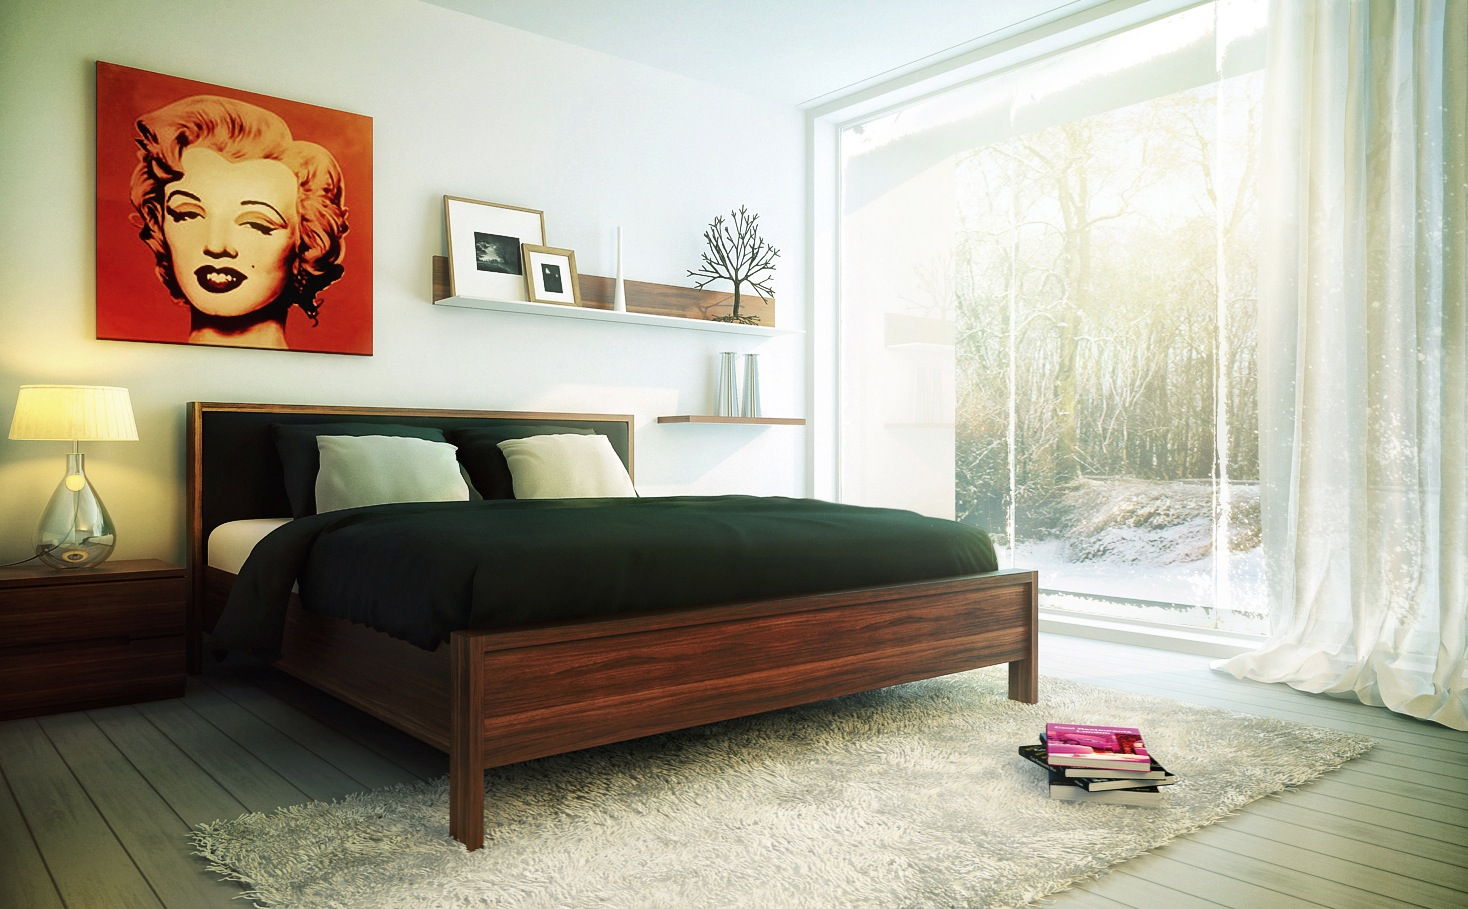 Bedroom Decoration Decorating Bedroom In Five Easy Steps My Decorative